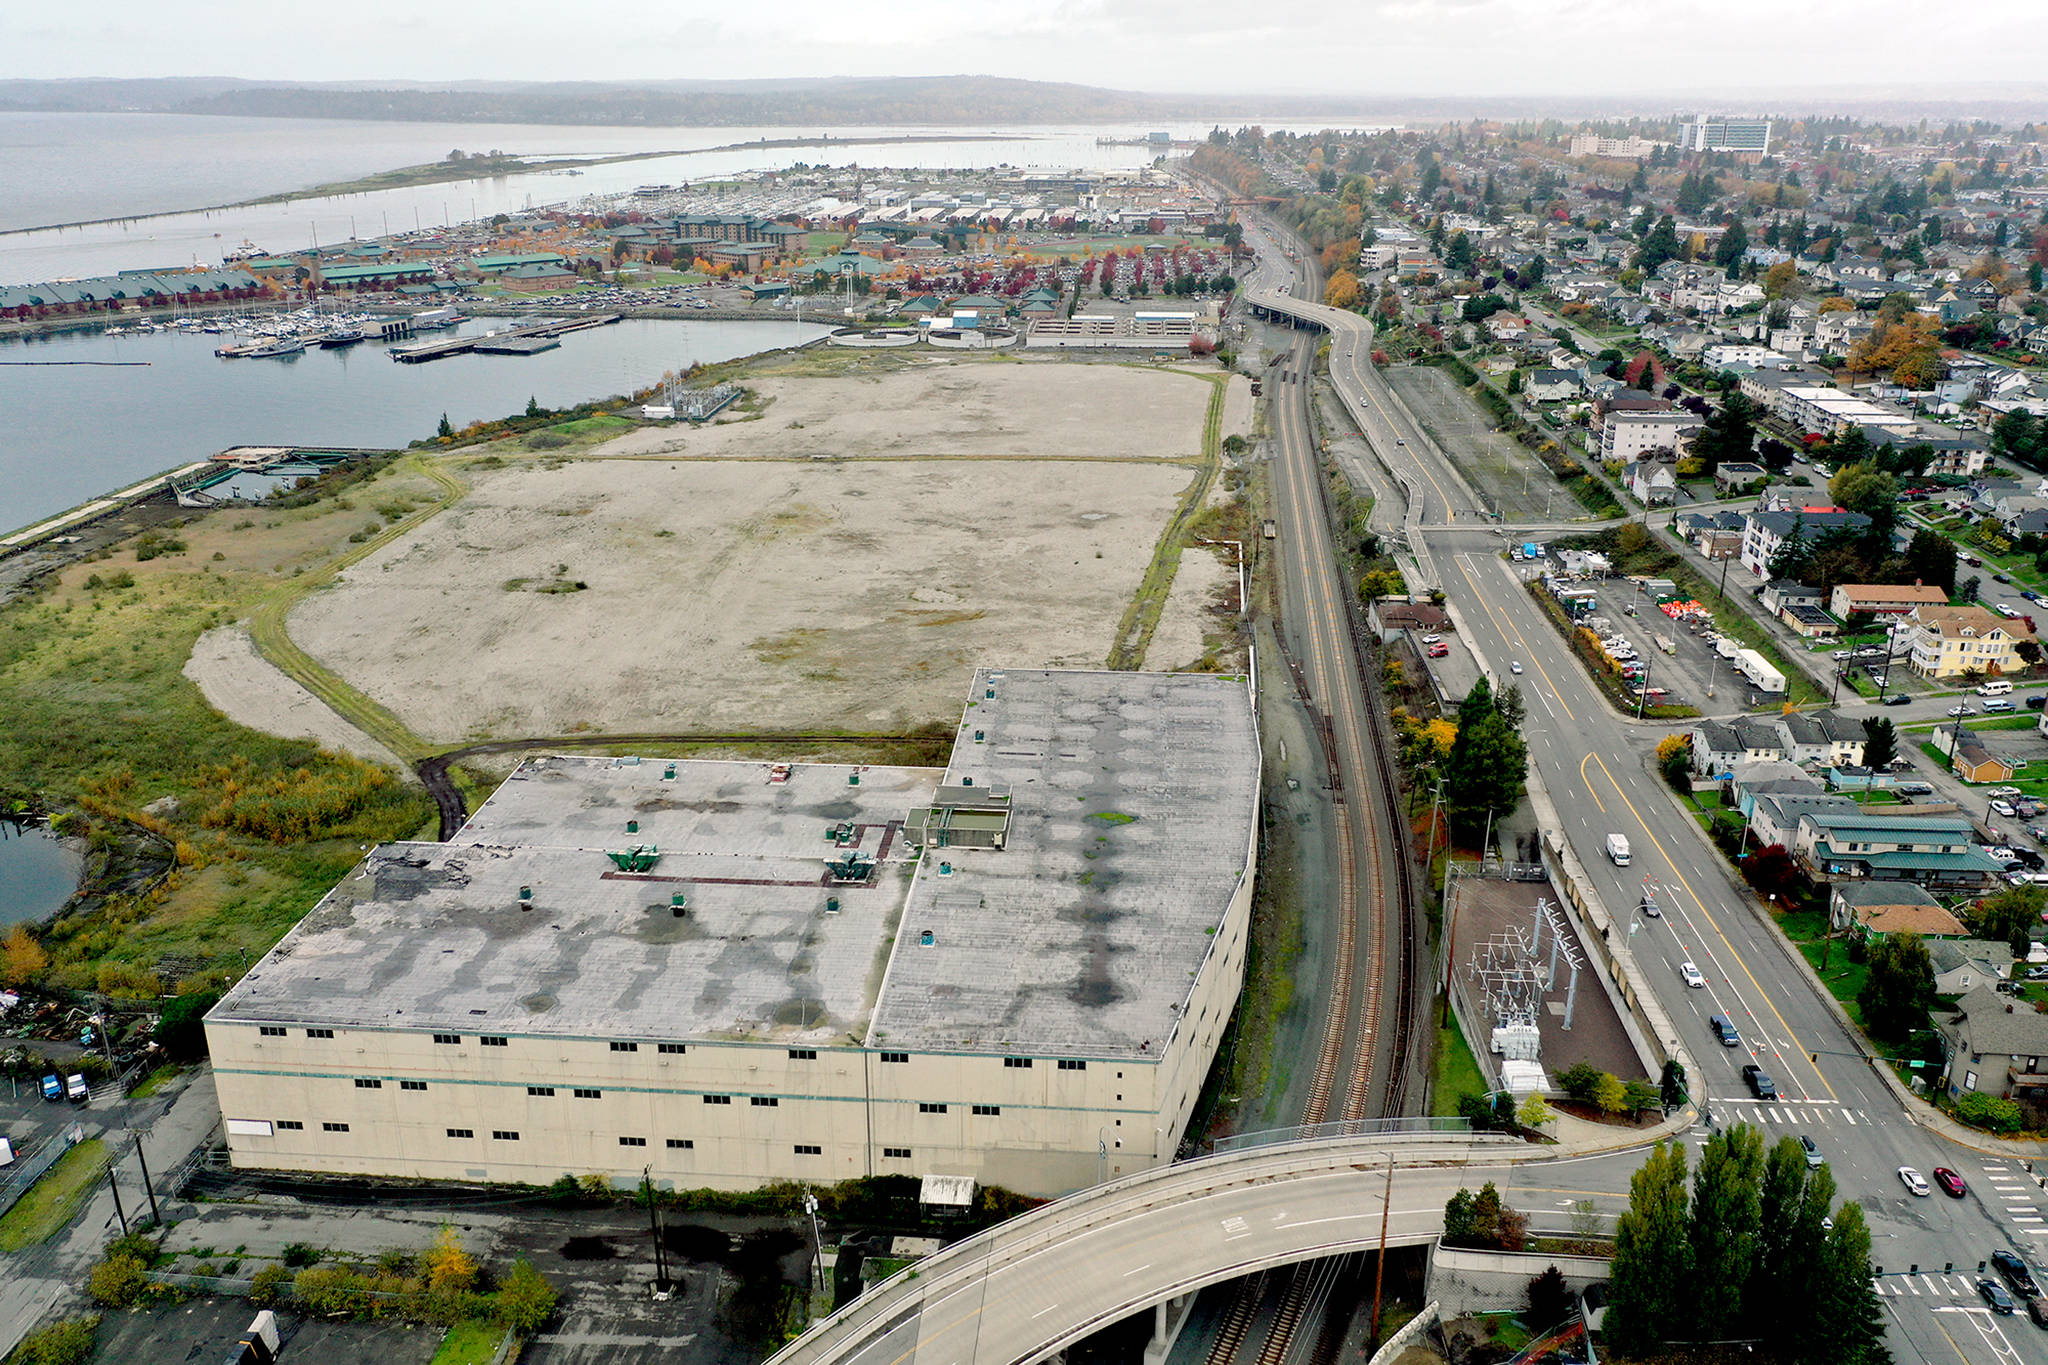 The warehouse (lower left) and vacant land of the former Kimberly-Clark paper mill on the Everett waterfront, as seen Tuesday. (Chuck Taylor / The Herald)